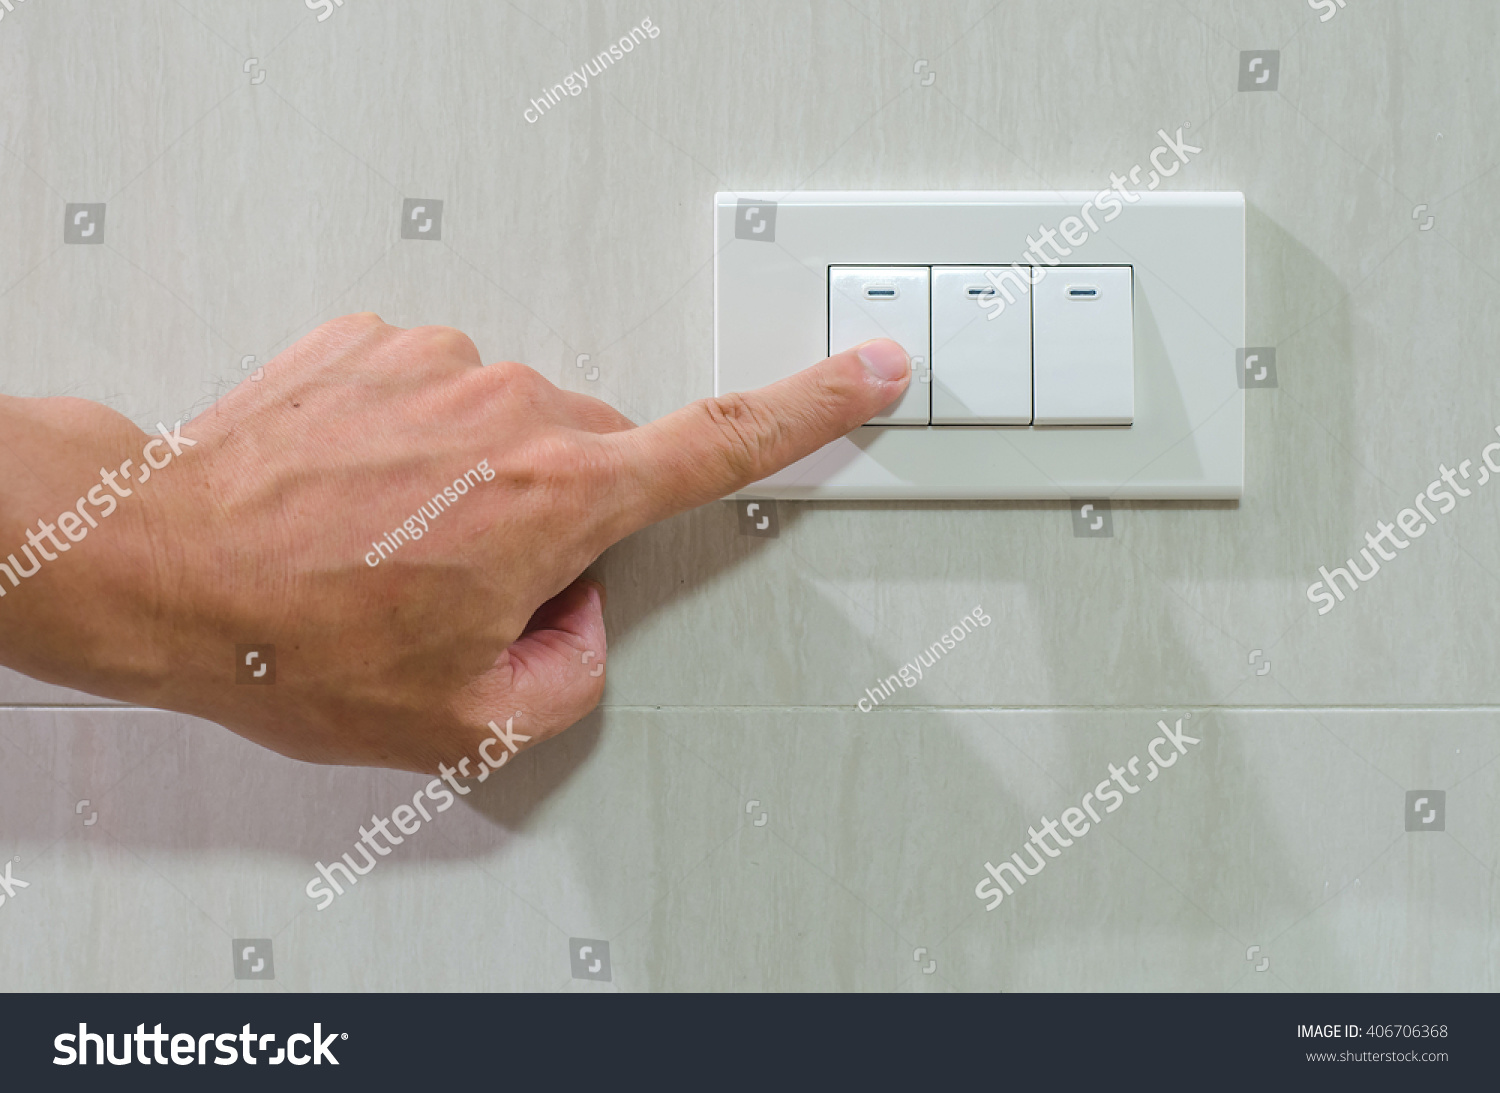 Press turn on/off electrical switch   EZ Canvas